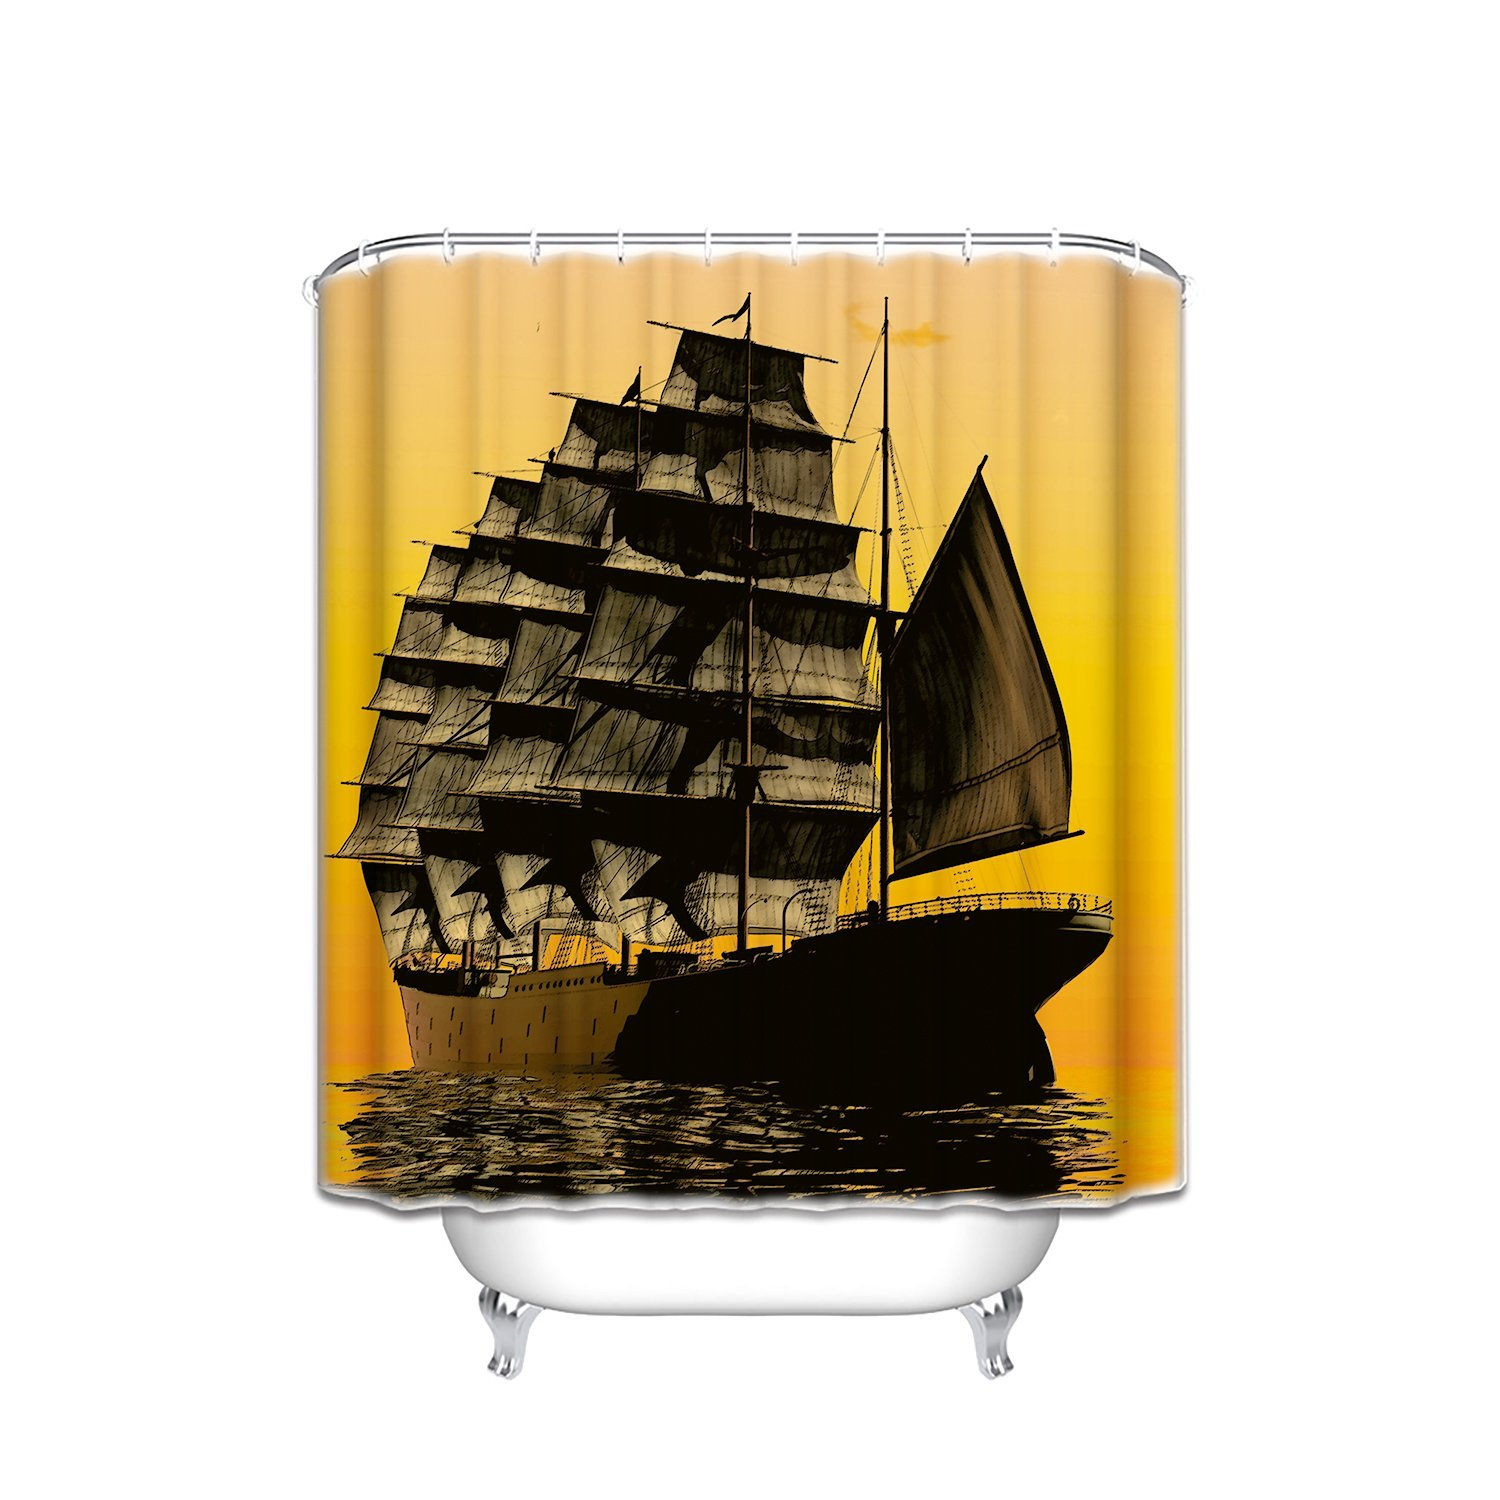 memory home sailboat decor shower curtain set sailing with sunset sunbeams on horizon romance honeymoon bathroom